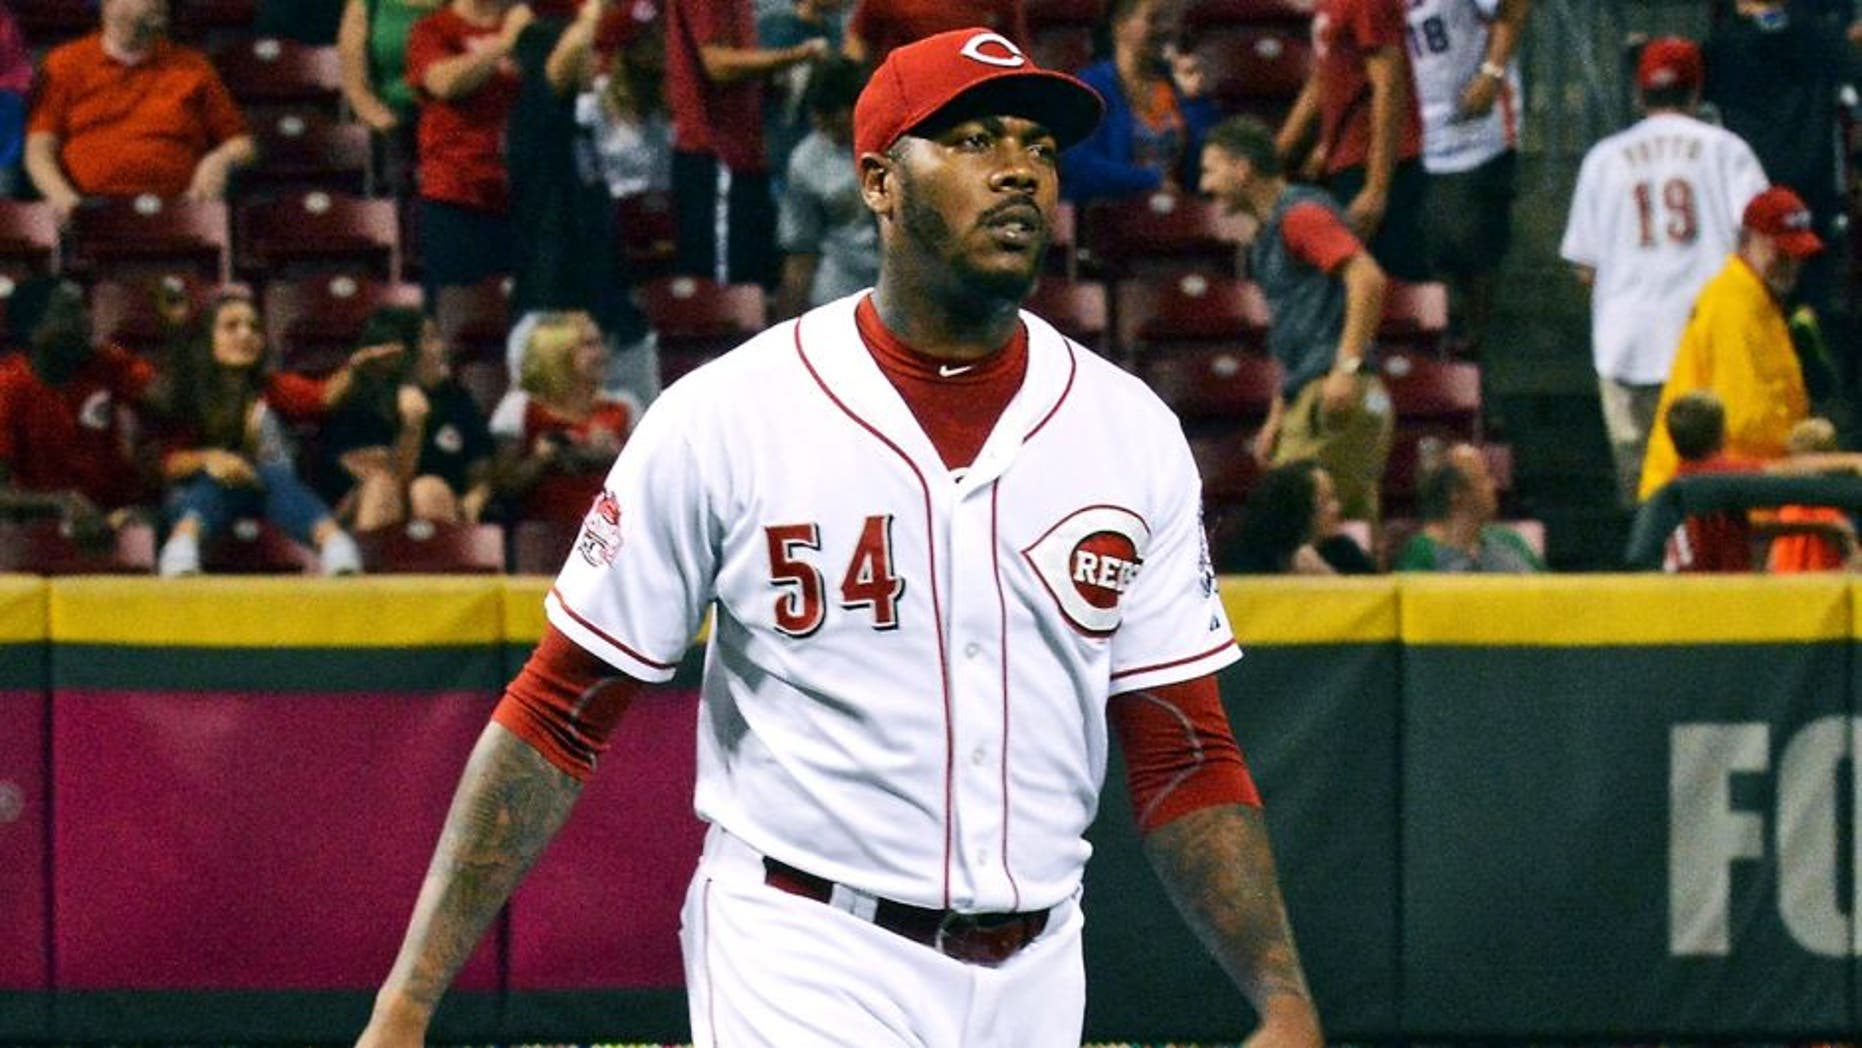 CINCINNATI, OH - SEPTEMBER 25: Aroldis Chapman #54 of the Cincinnati Reds walks to the mound to pitch in the ninth inning against the New York Mets with an image of his face on the scoreboard behind him at Great American Ball Park on September 25, 2015 in Cincinnati, Ohio. New York defeated Cincinnati 12-5. (Photo by Jamie Sabau/Getty Images)